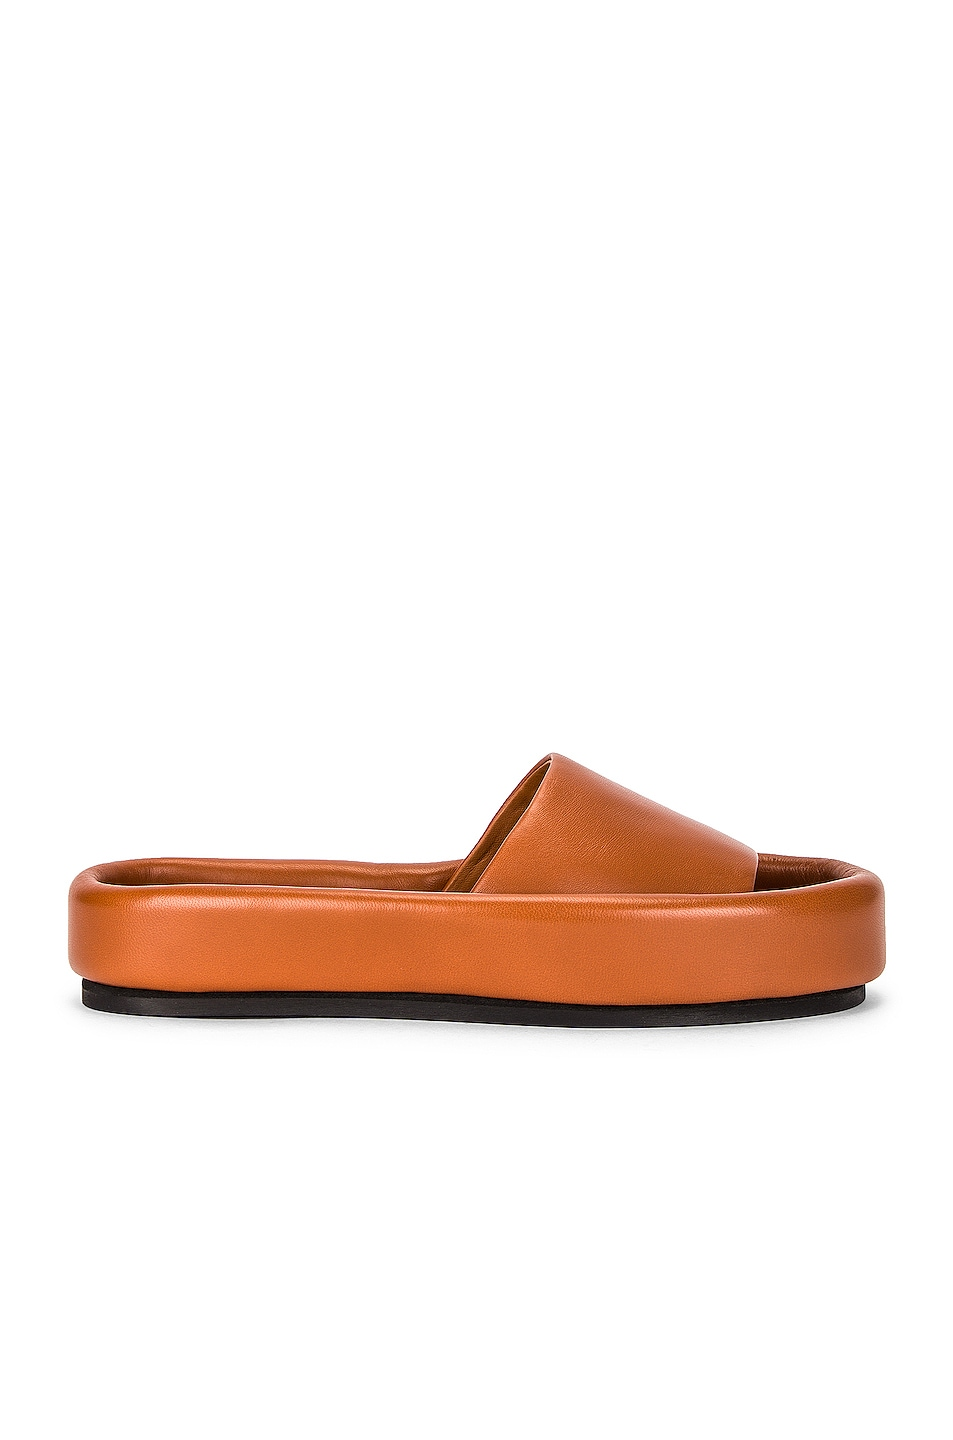 Image 1 of KHAITE Venice Pool Slides in Caramel